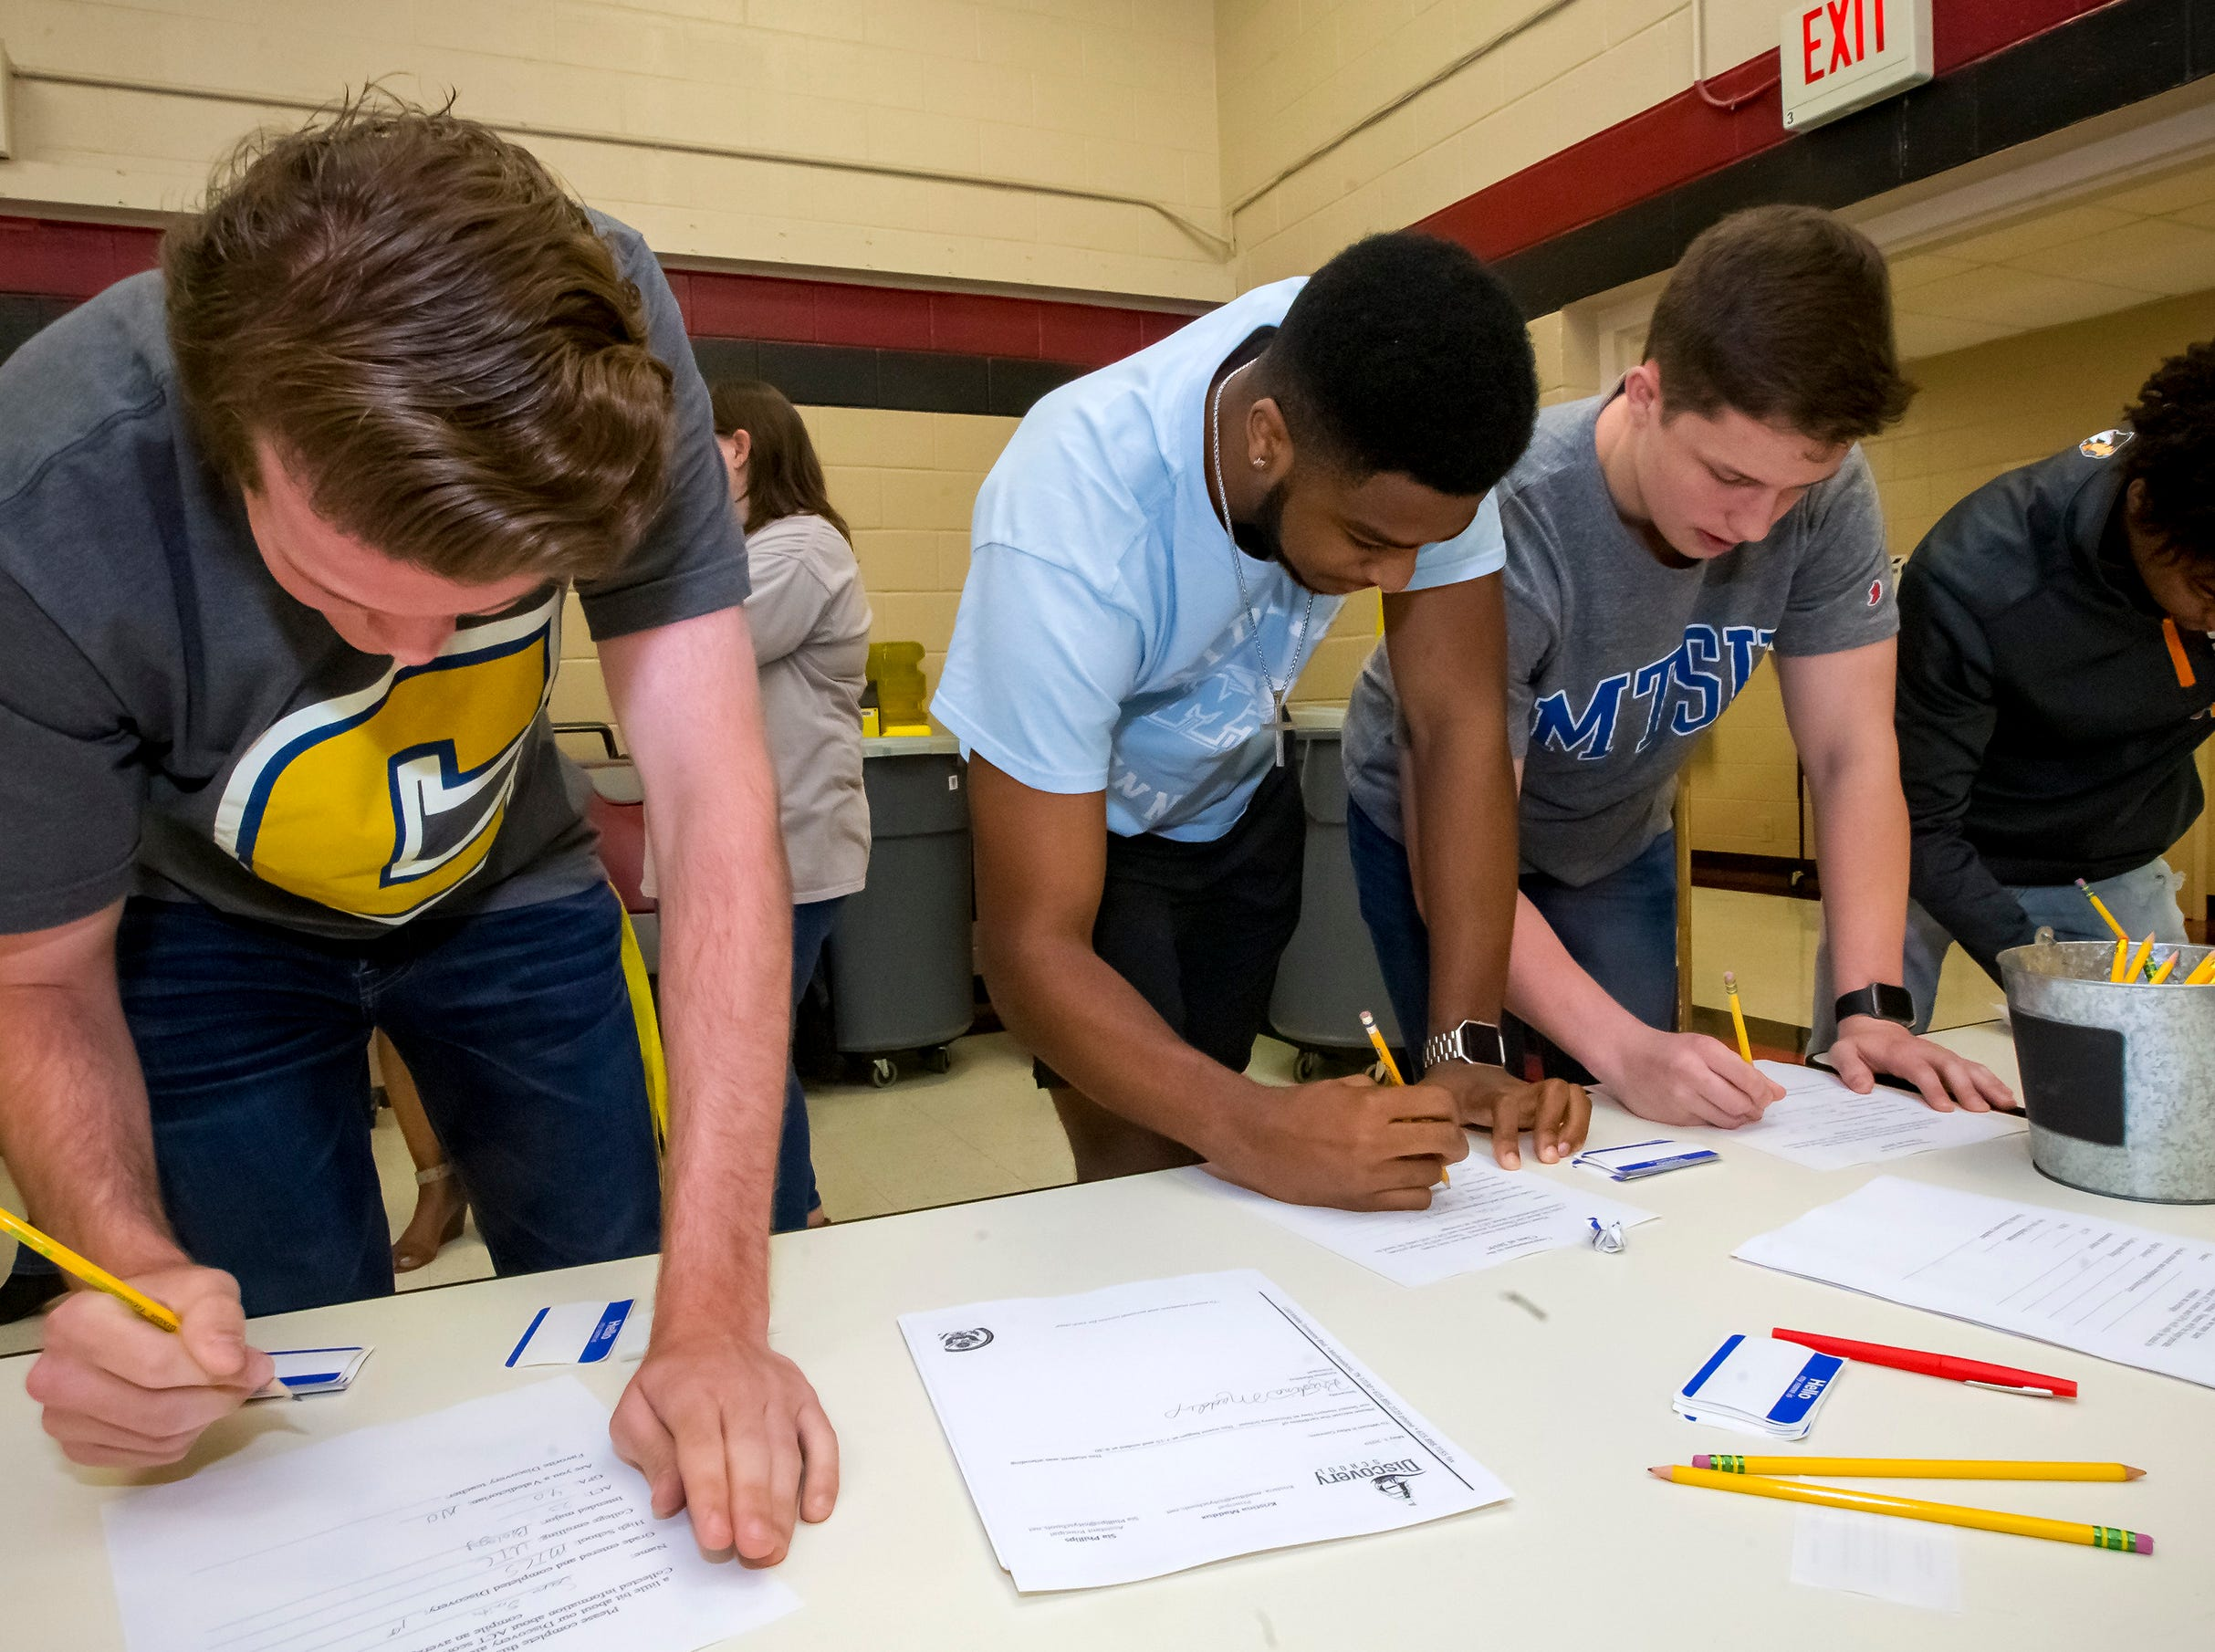 Sam Smith, Joesph Howard, Andrew Bruce and Evan Alford sign in as they joined other former students at Discovery School at Bellwood in the Senior Walk Friday, May 3, 2019.